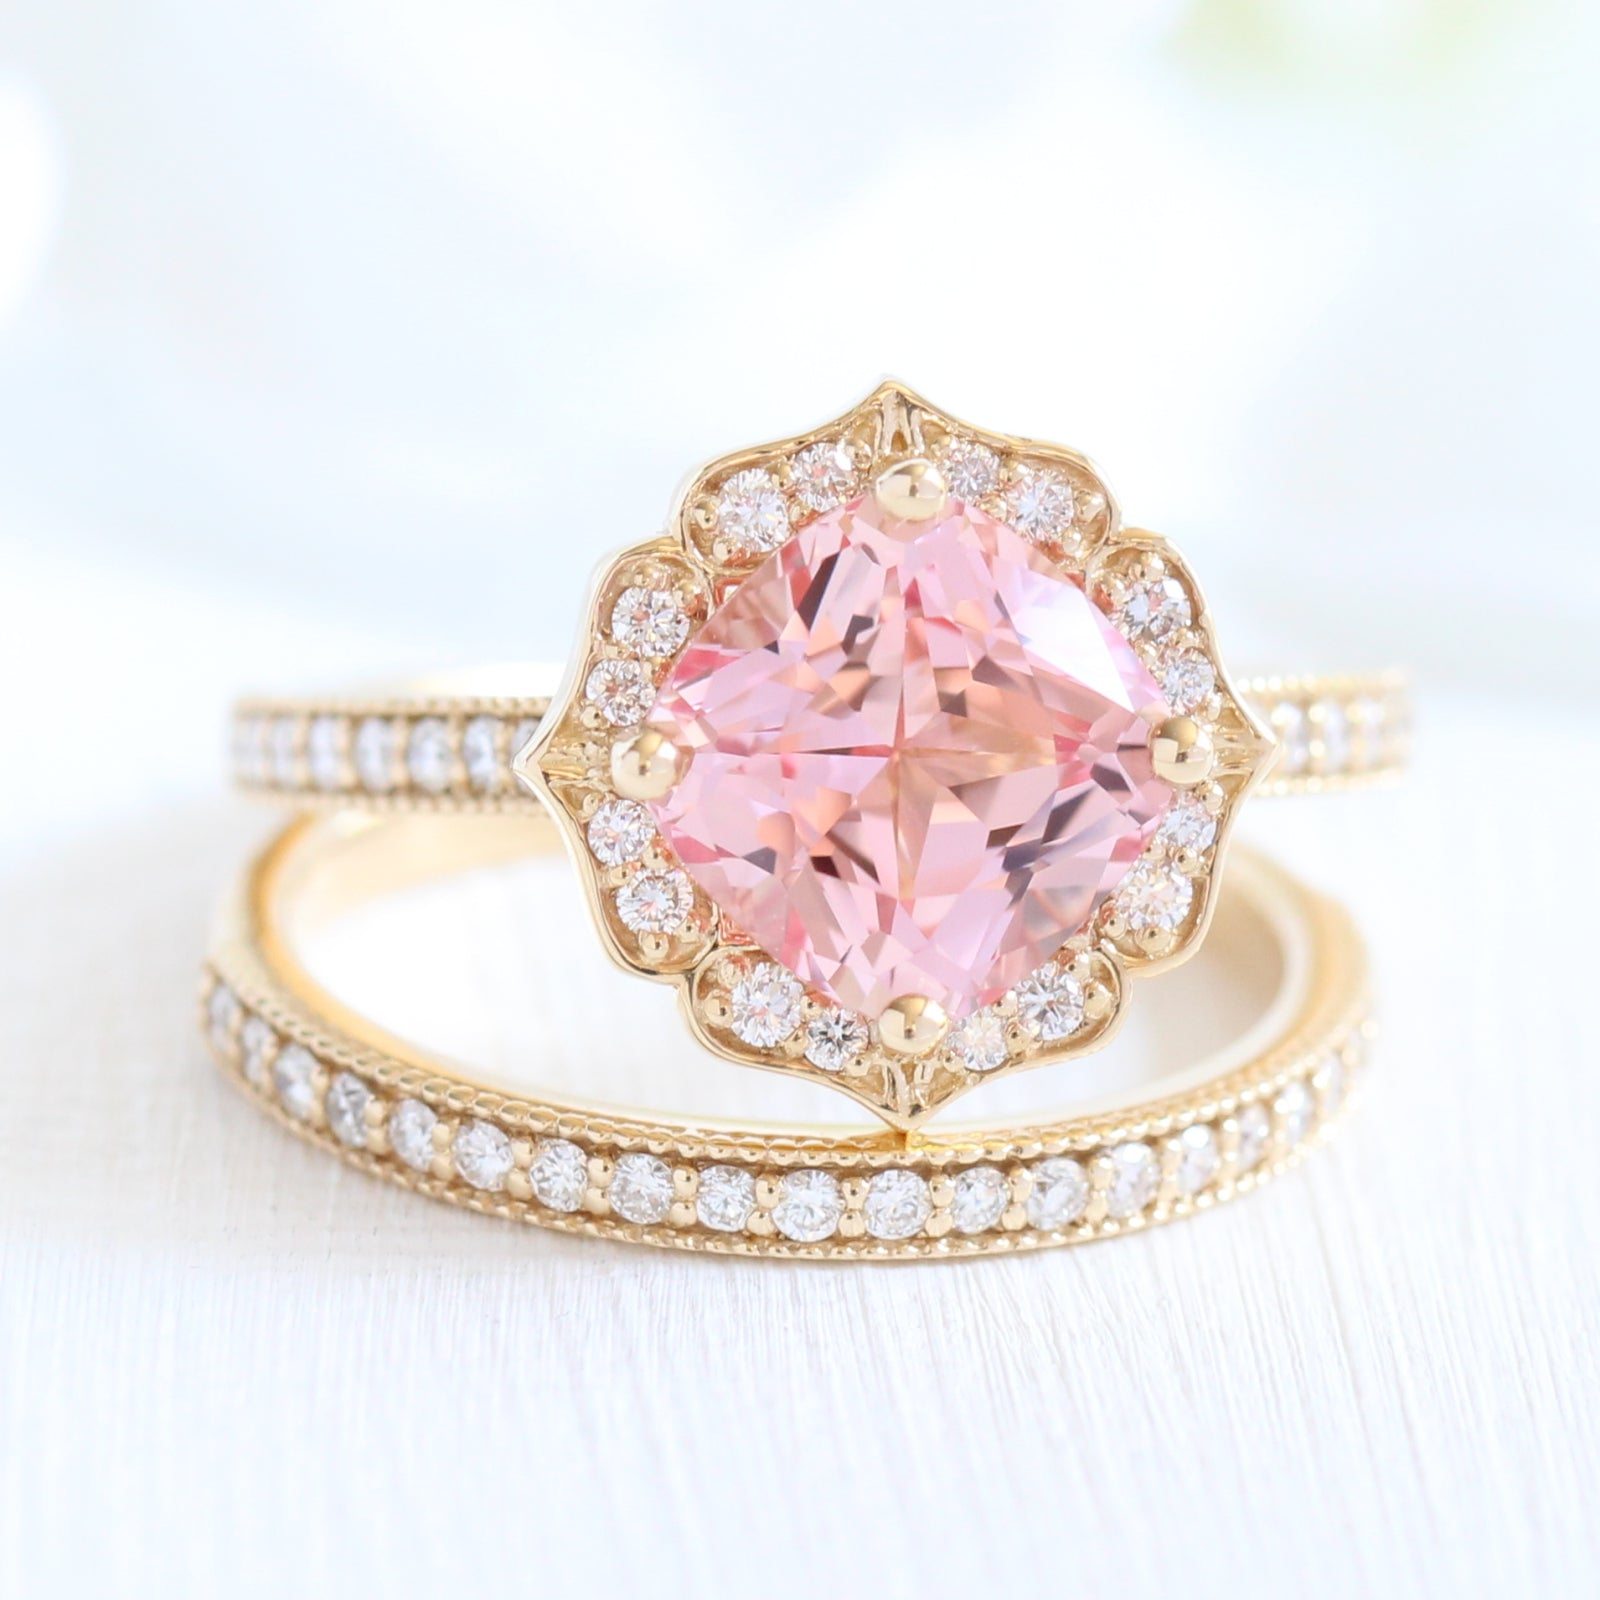 Vintage Floral Bridal Set in Milgrain Band w/ Cushion Peach Sapphire ...